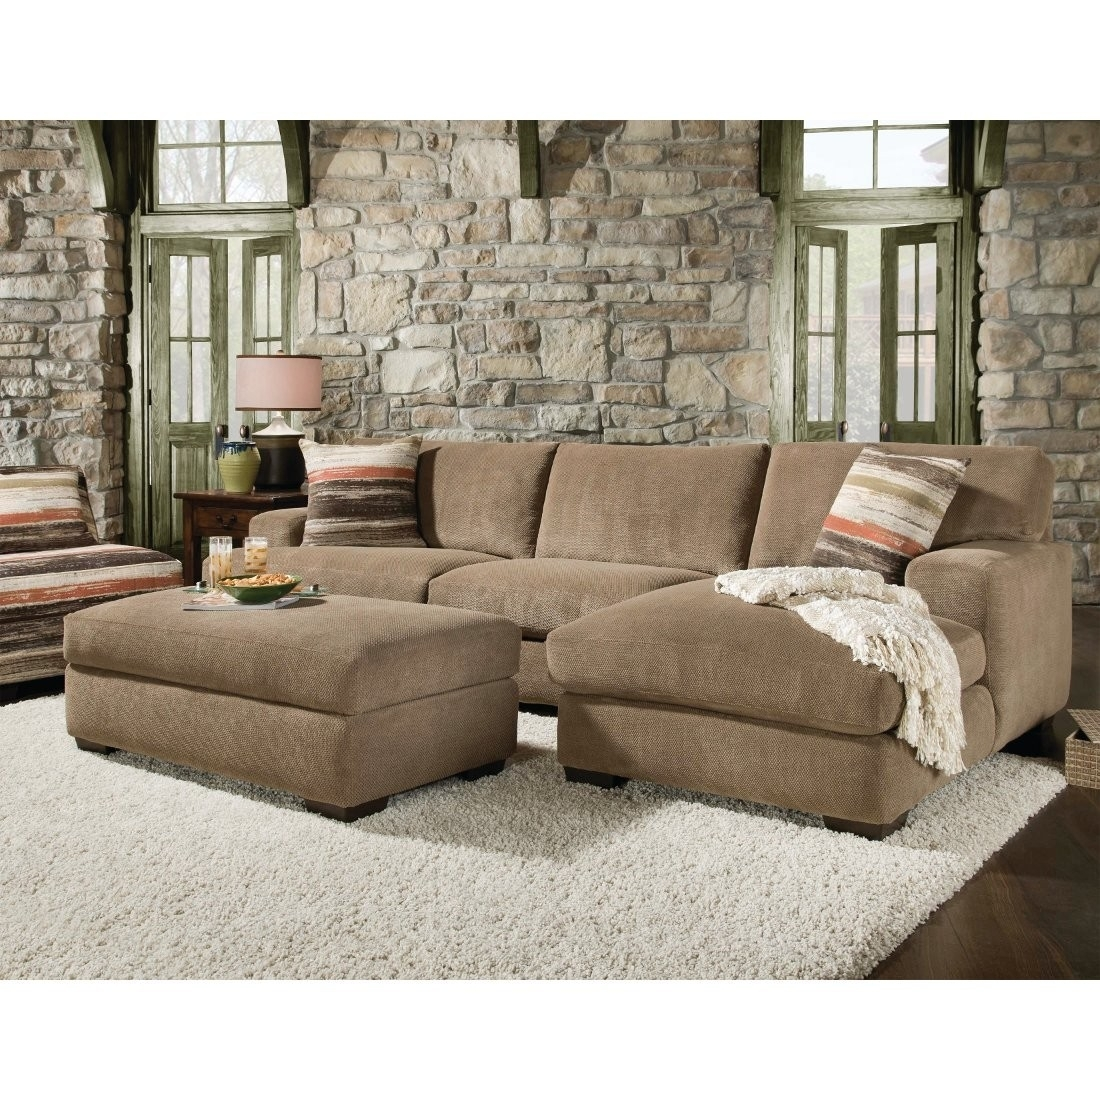 Beautiful Sectional Sofa With Chaise And Ottoman Pictures Inside Sectionals With Chaise And Ottoman (View 4 of 15)